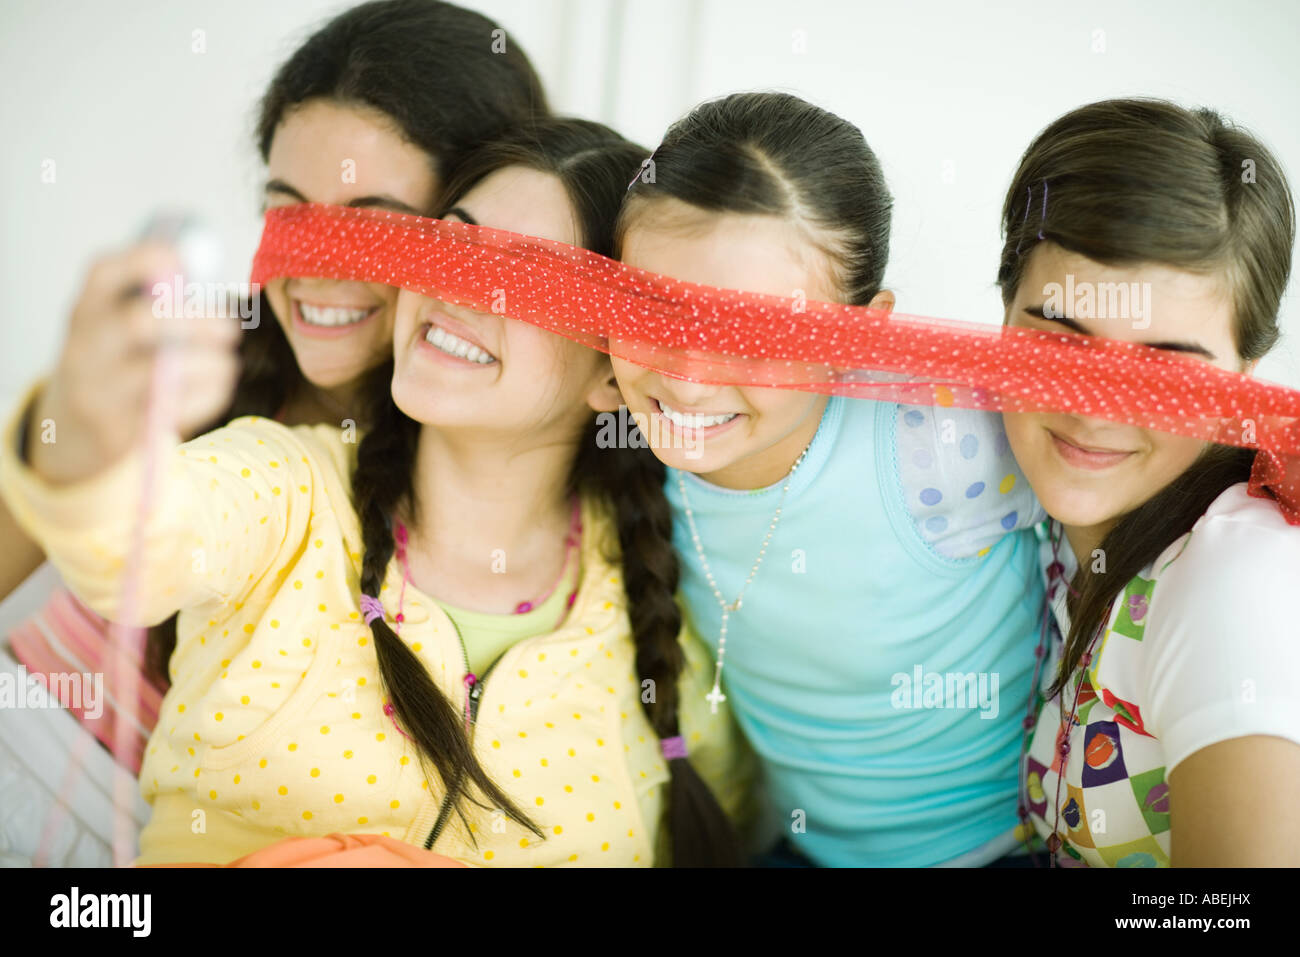 Four young female friends holding scarf in front of eyes, one taking photo with cell phone - Stock Image